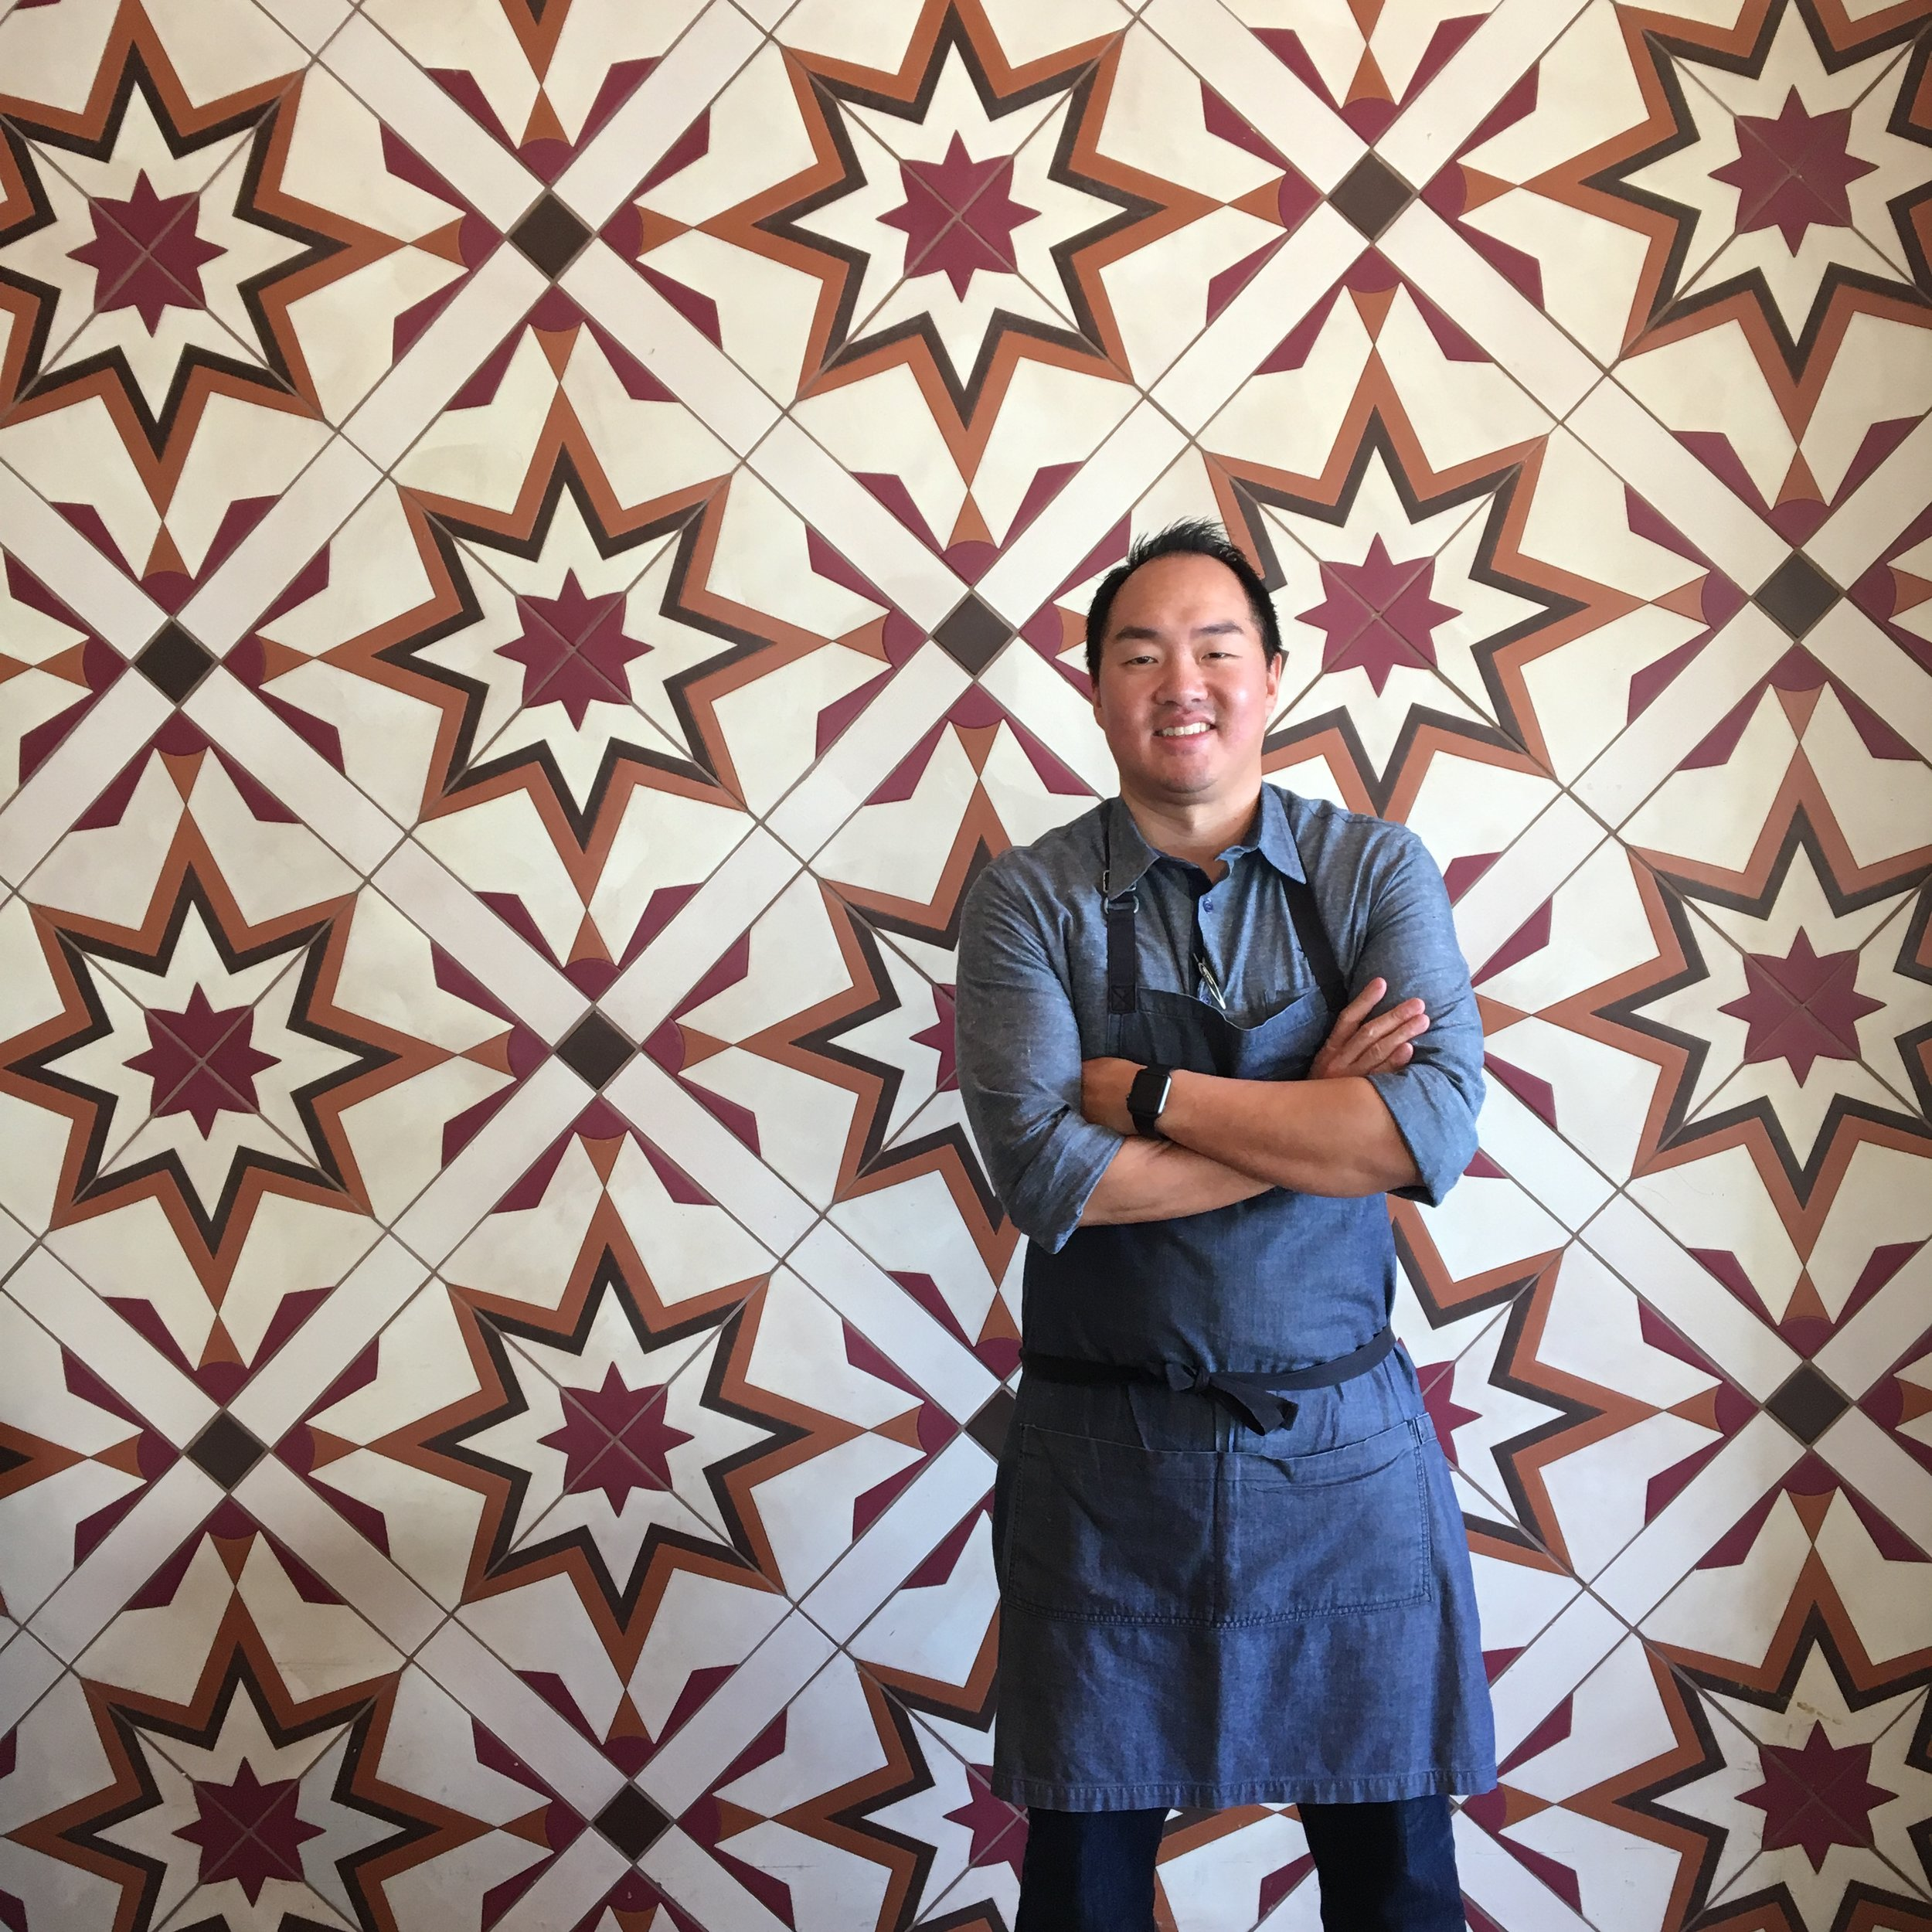 Chef James Siao, passionate cyclist and executive chef genius at Finch & Fork Restaurant in Santa Barbara, CA.